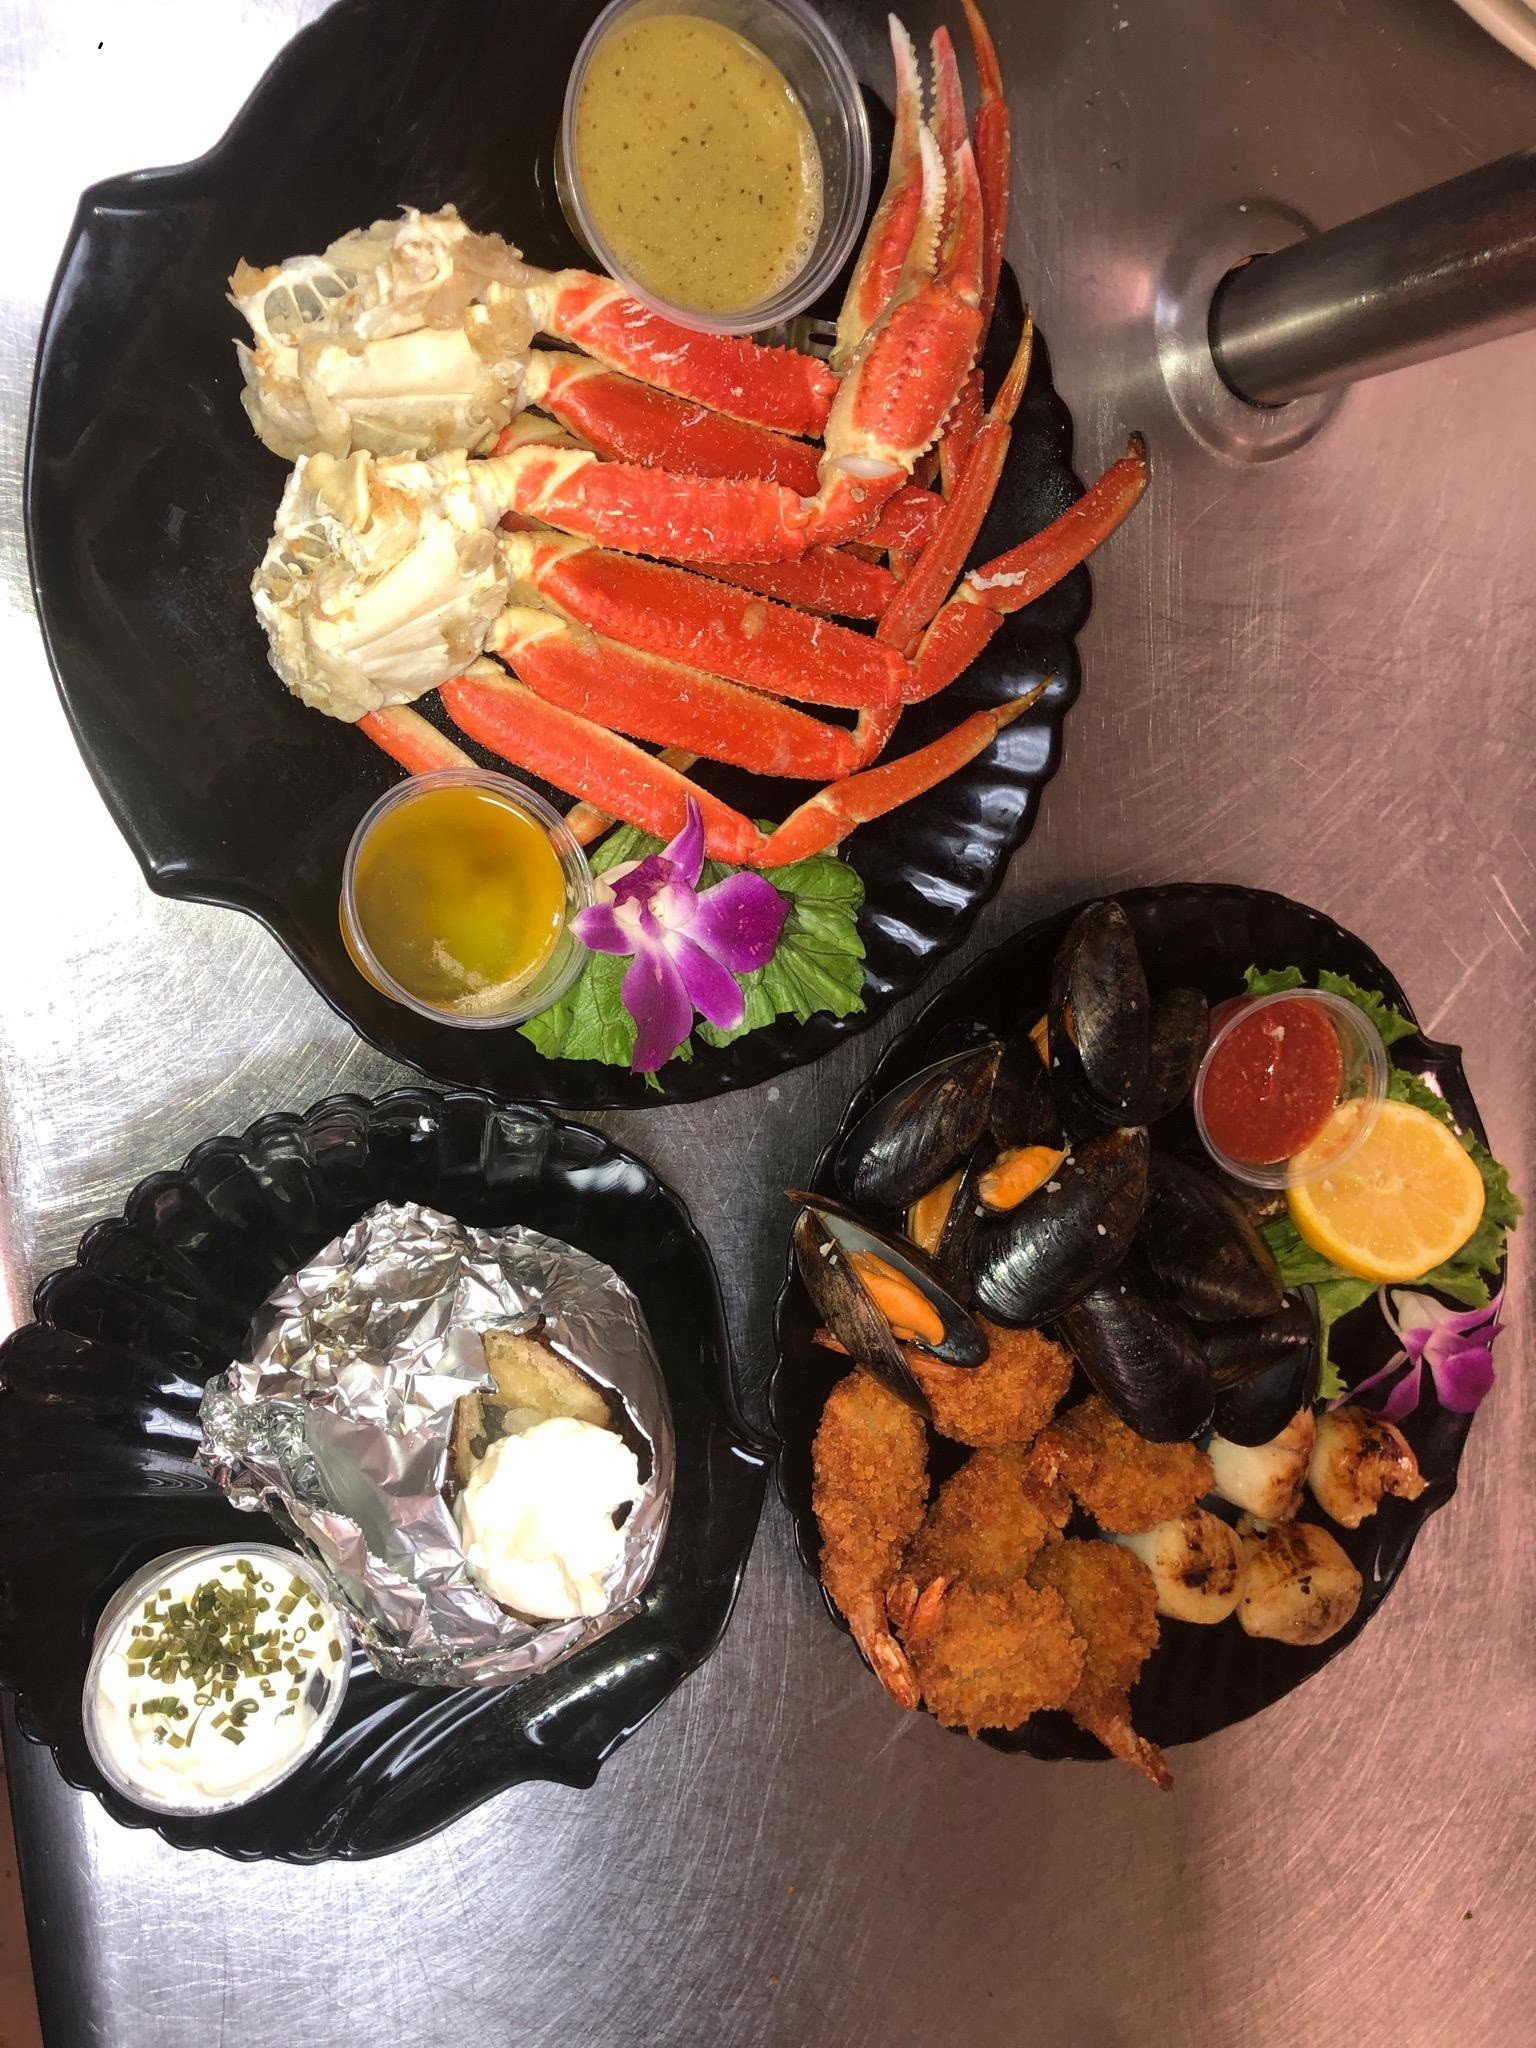 """A popular choice on the  Hartford House menu is """"Taste of the Oceans,"""" according to cook Hunter Foltz. The entree includes Northern Atlantic snow crab, Gulf shrimp, Mediterranean mussels and sea scallops. (Submitted photo)"""